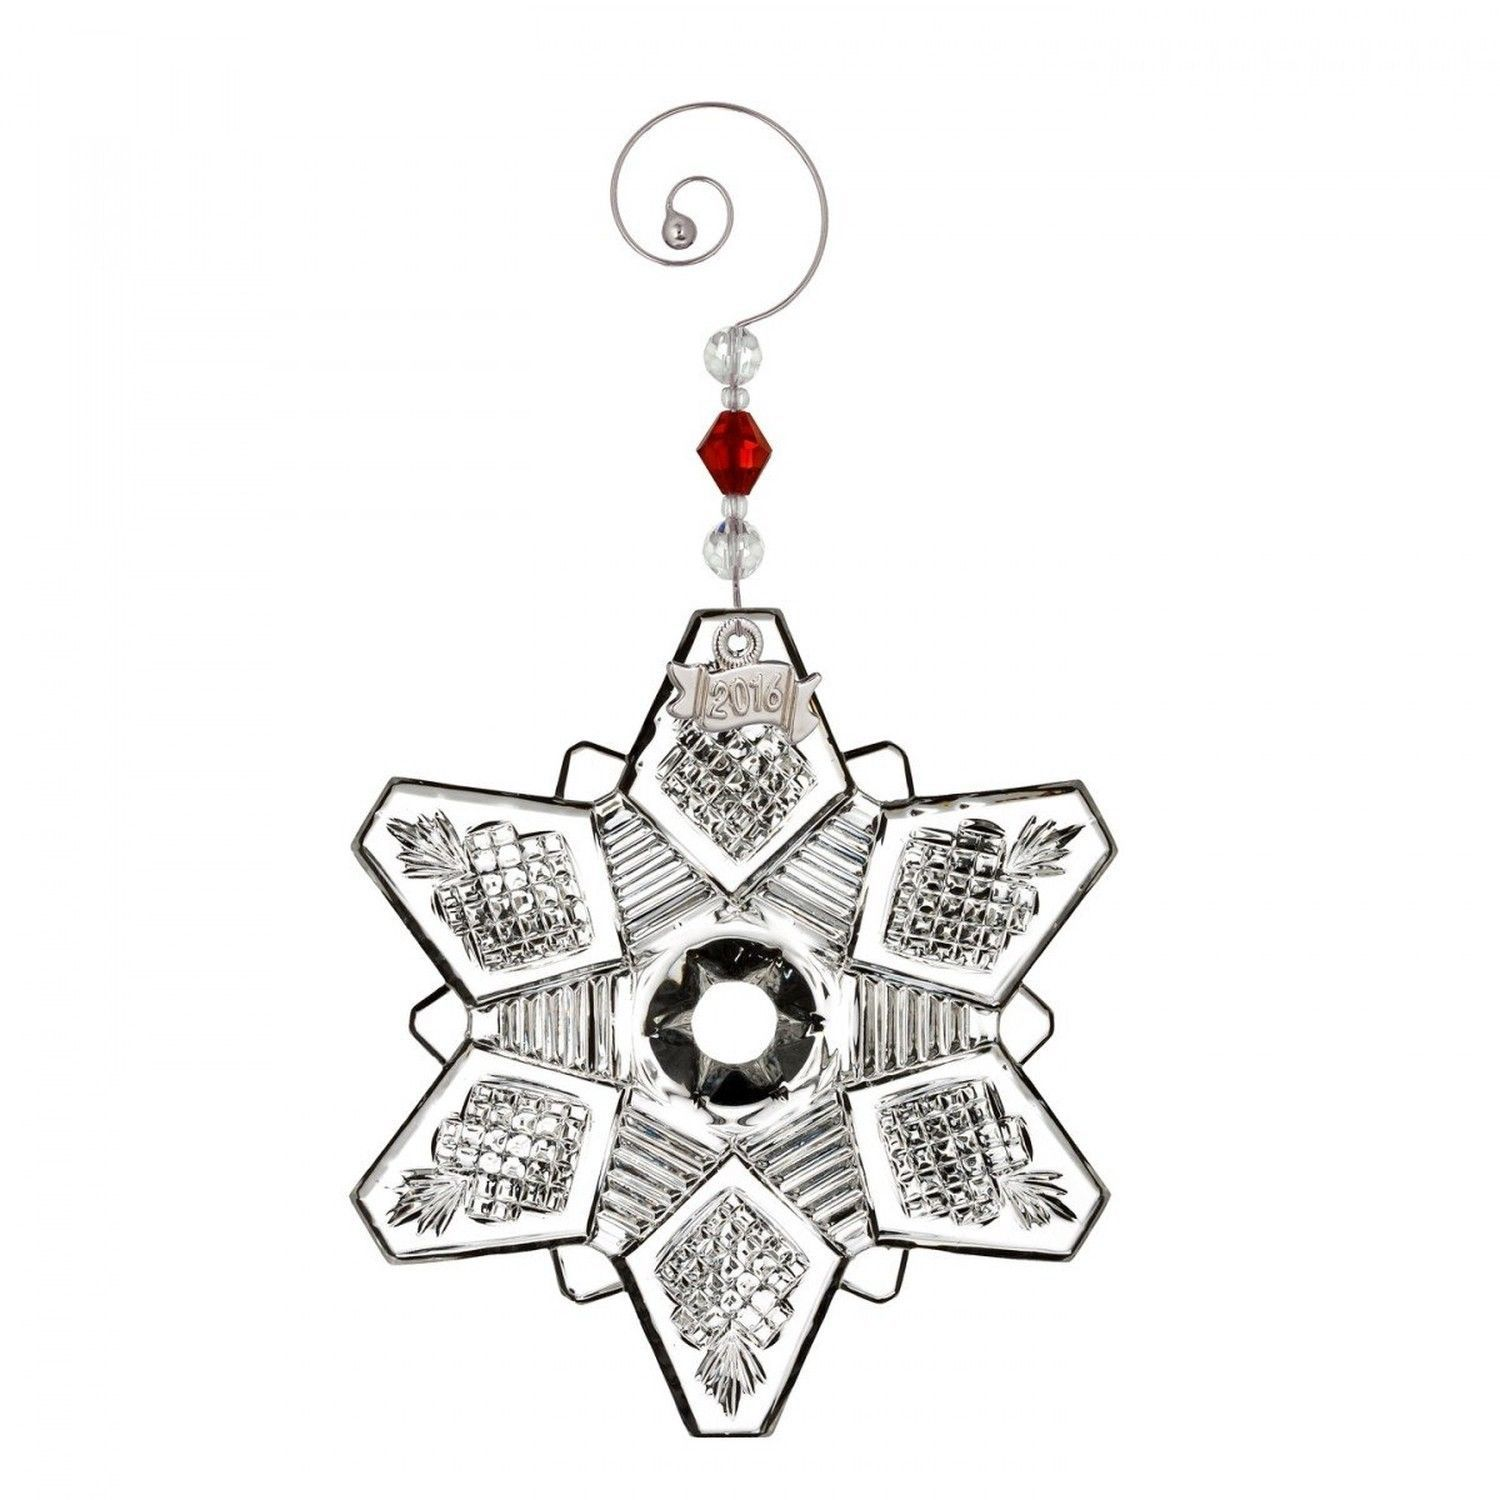 Waterford Snowcrystal Pierced Ornament